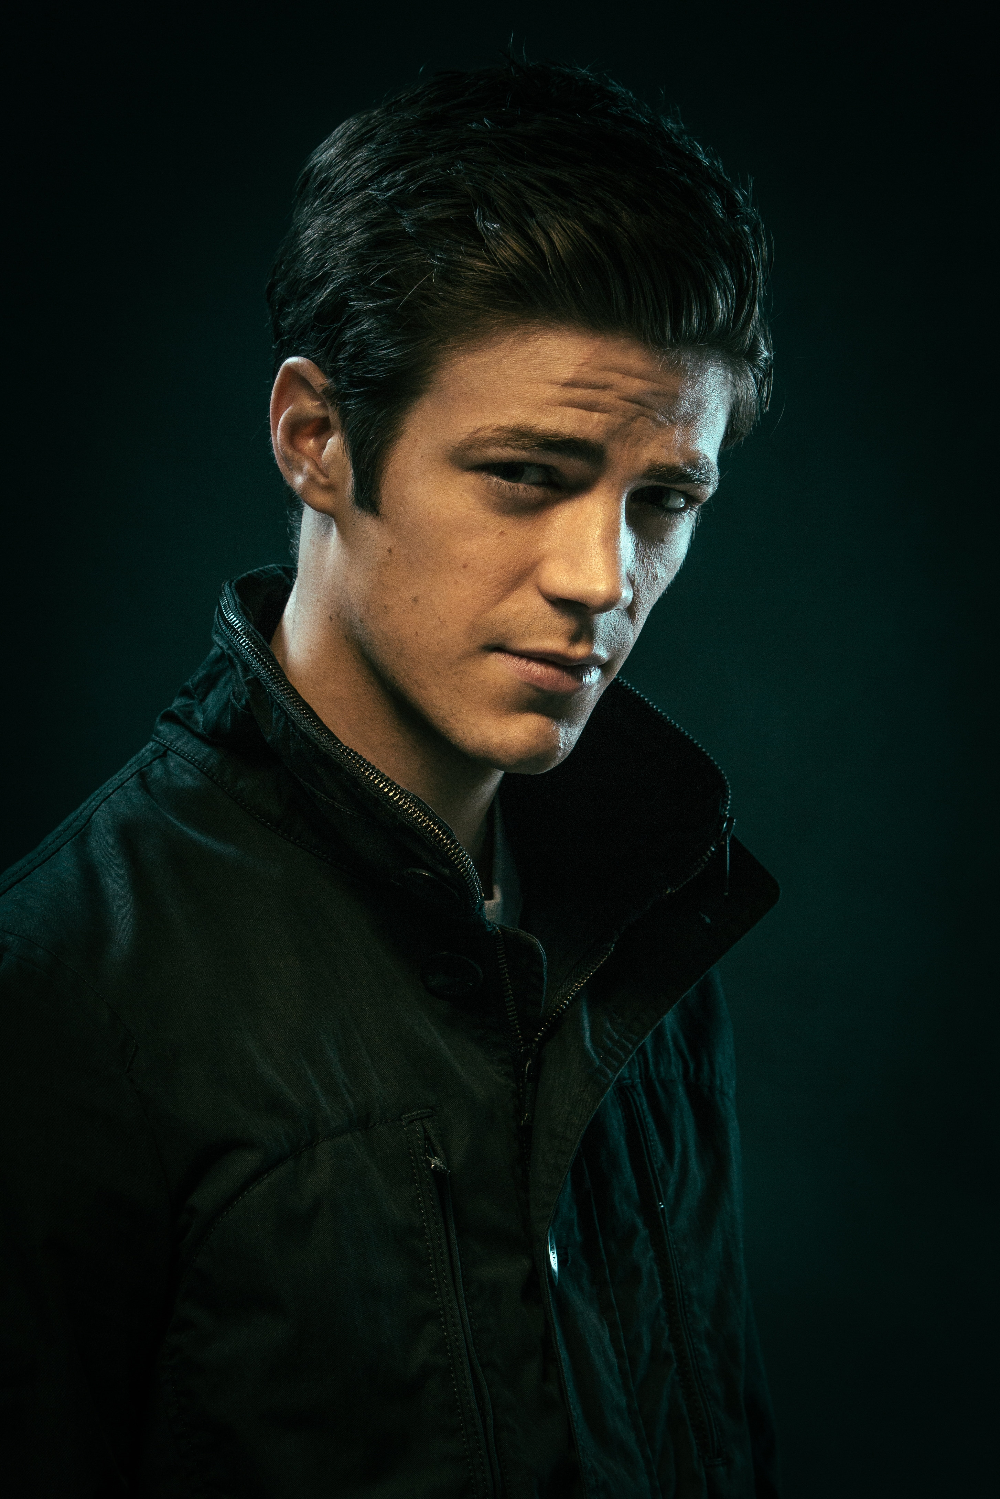 Pin By Grace Kellerman On The Flash In 2020 Grant Gustin Gustin The Flash Grant Gustin